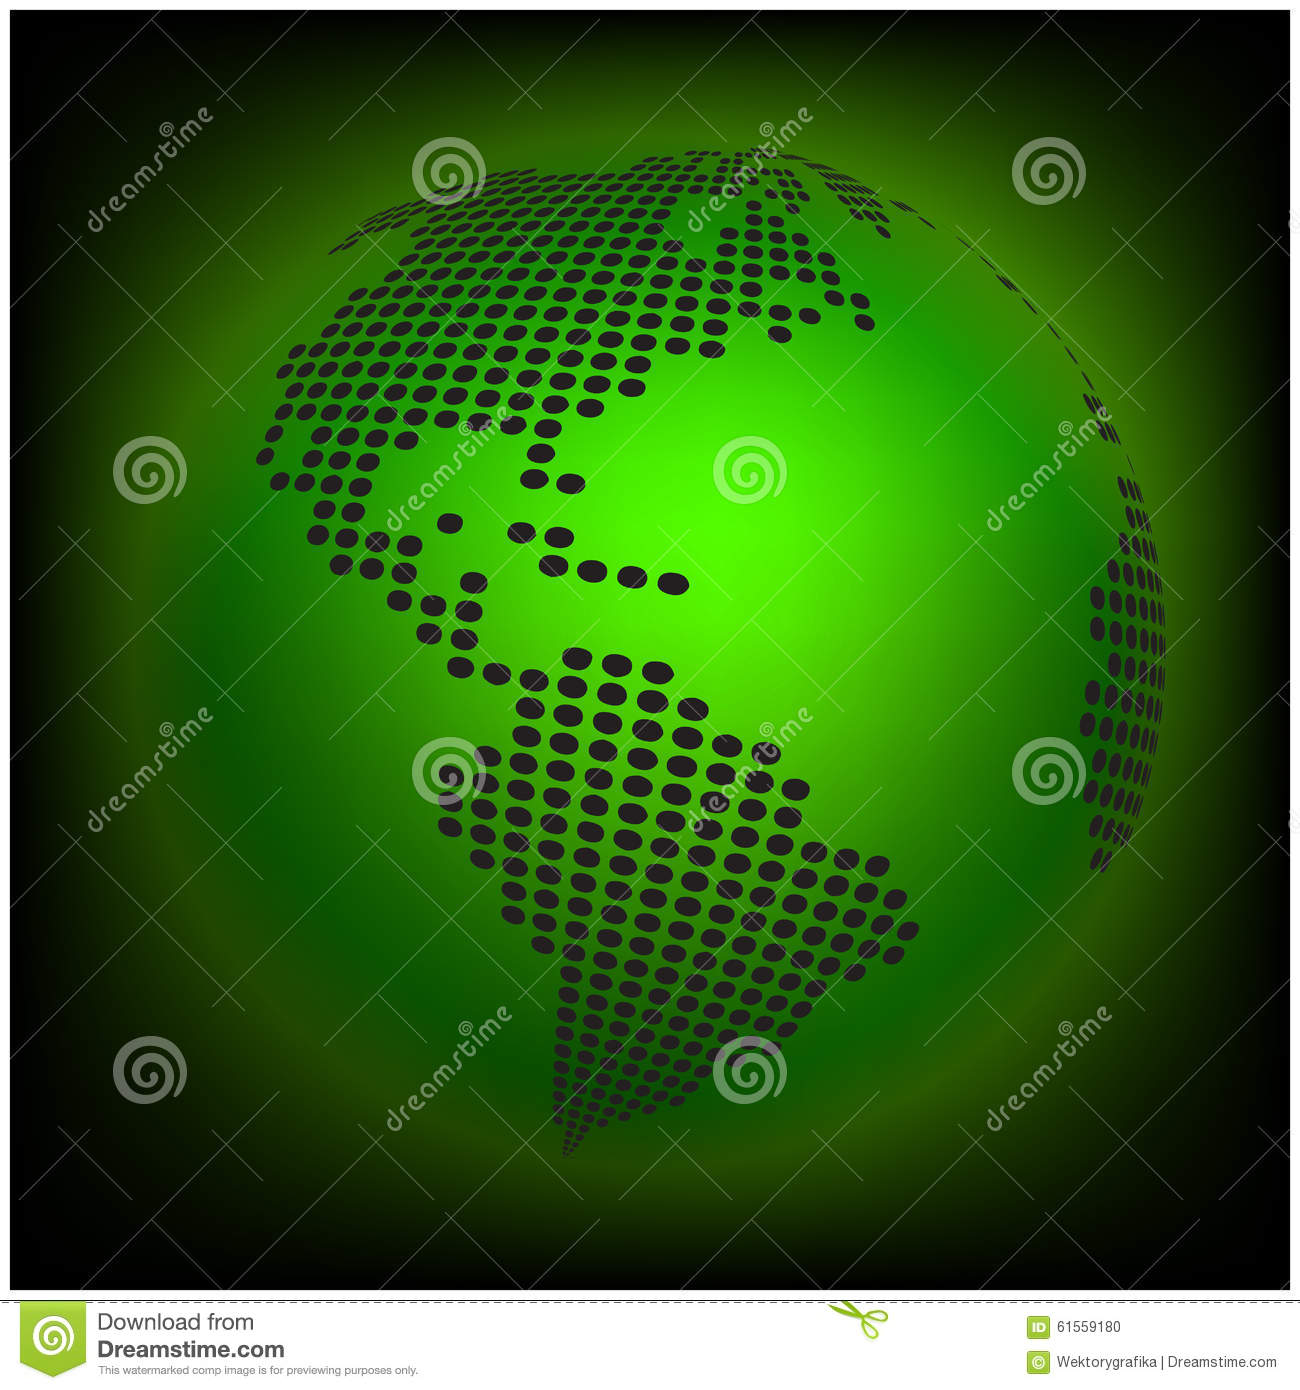 Earth globe world map of dots vector illustration stock vector globe earth world map abstract dotted vector background green wallpaper illustration stock photo gumiabroncs Image collections